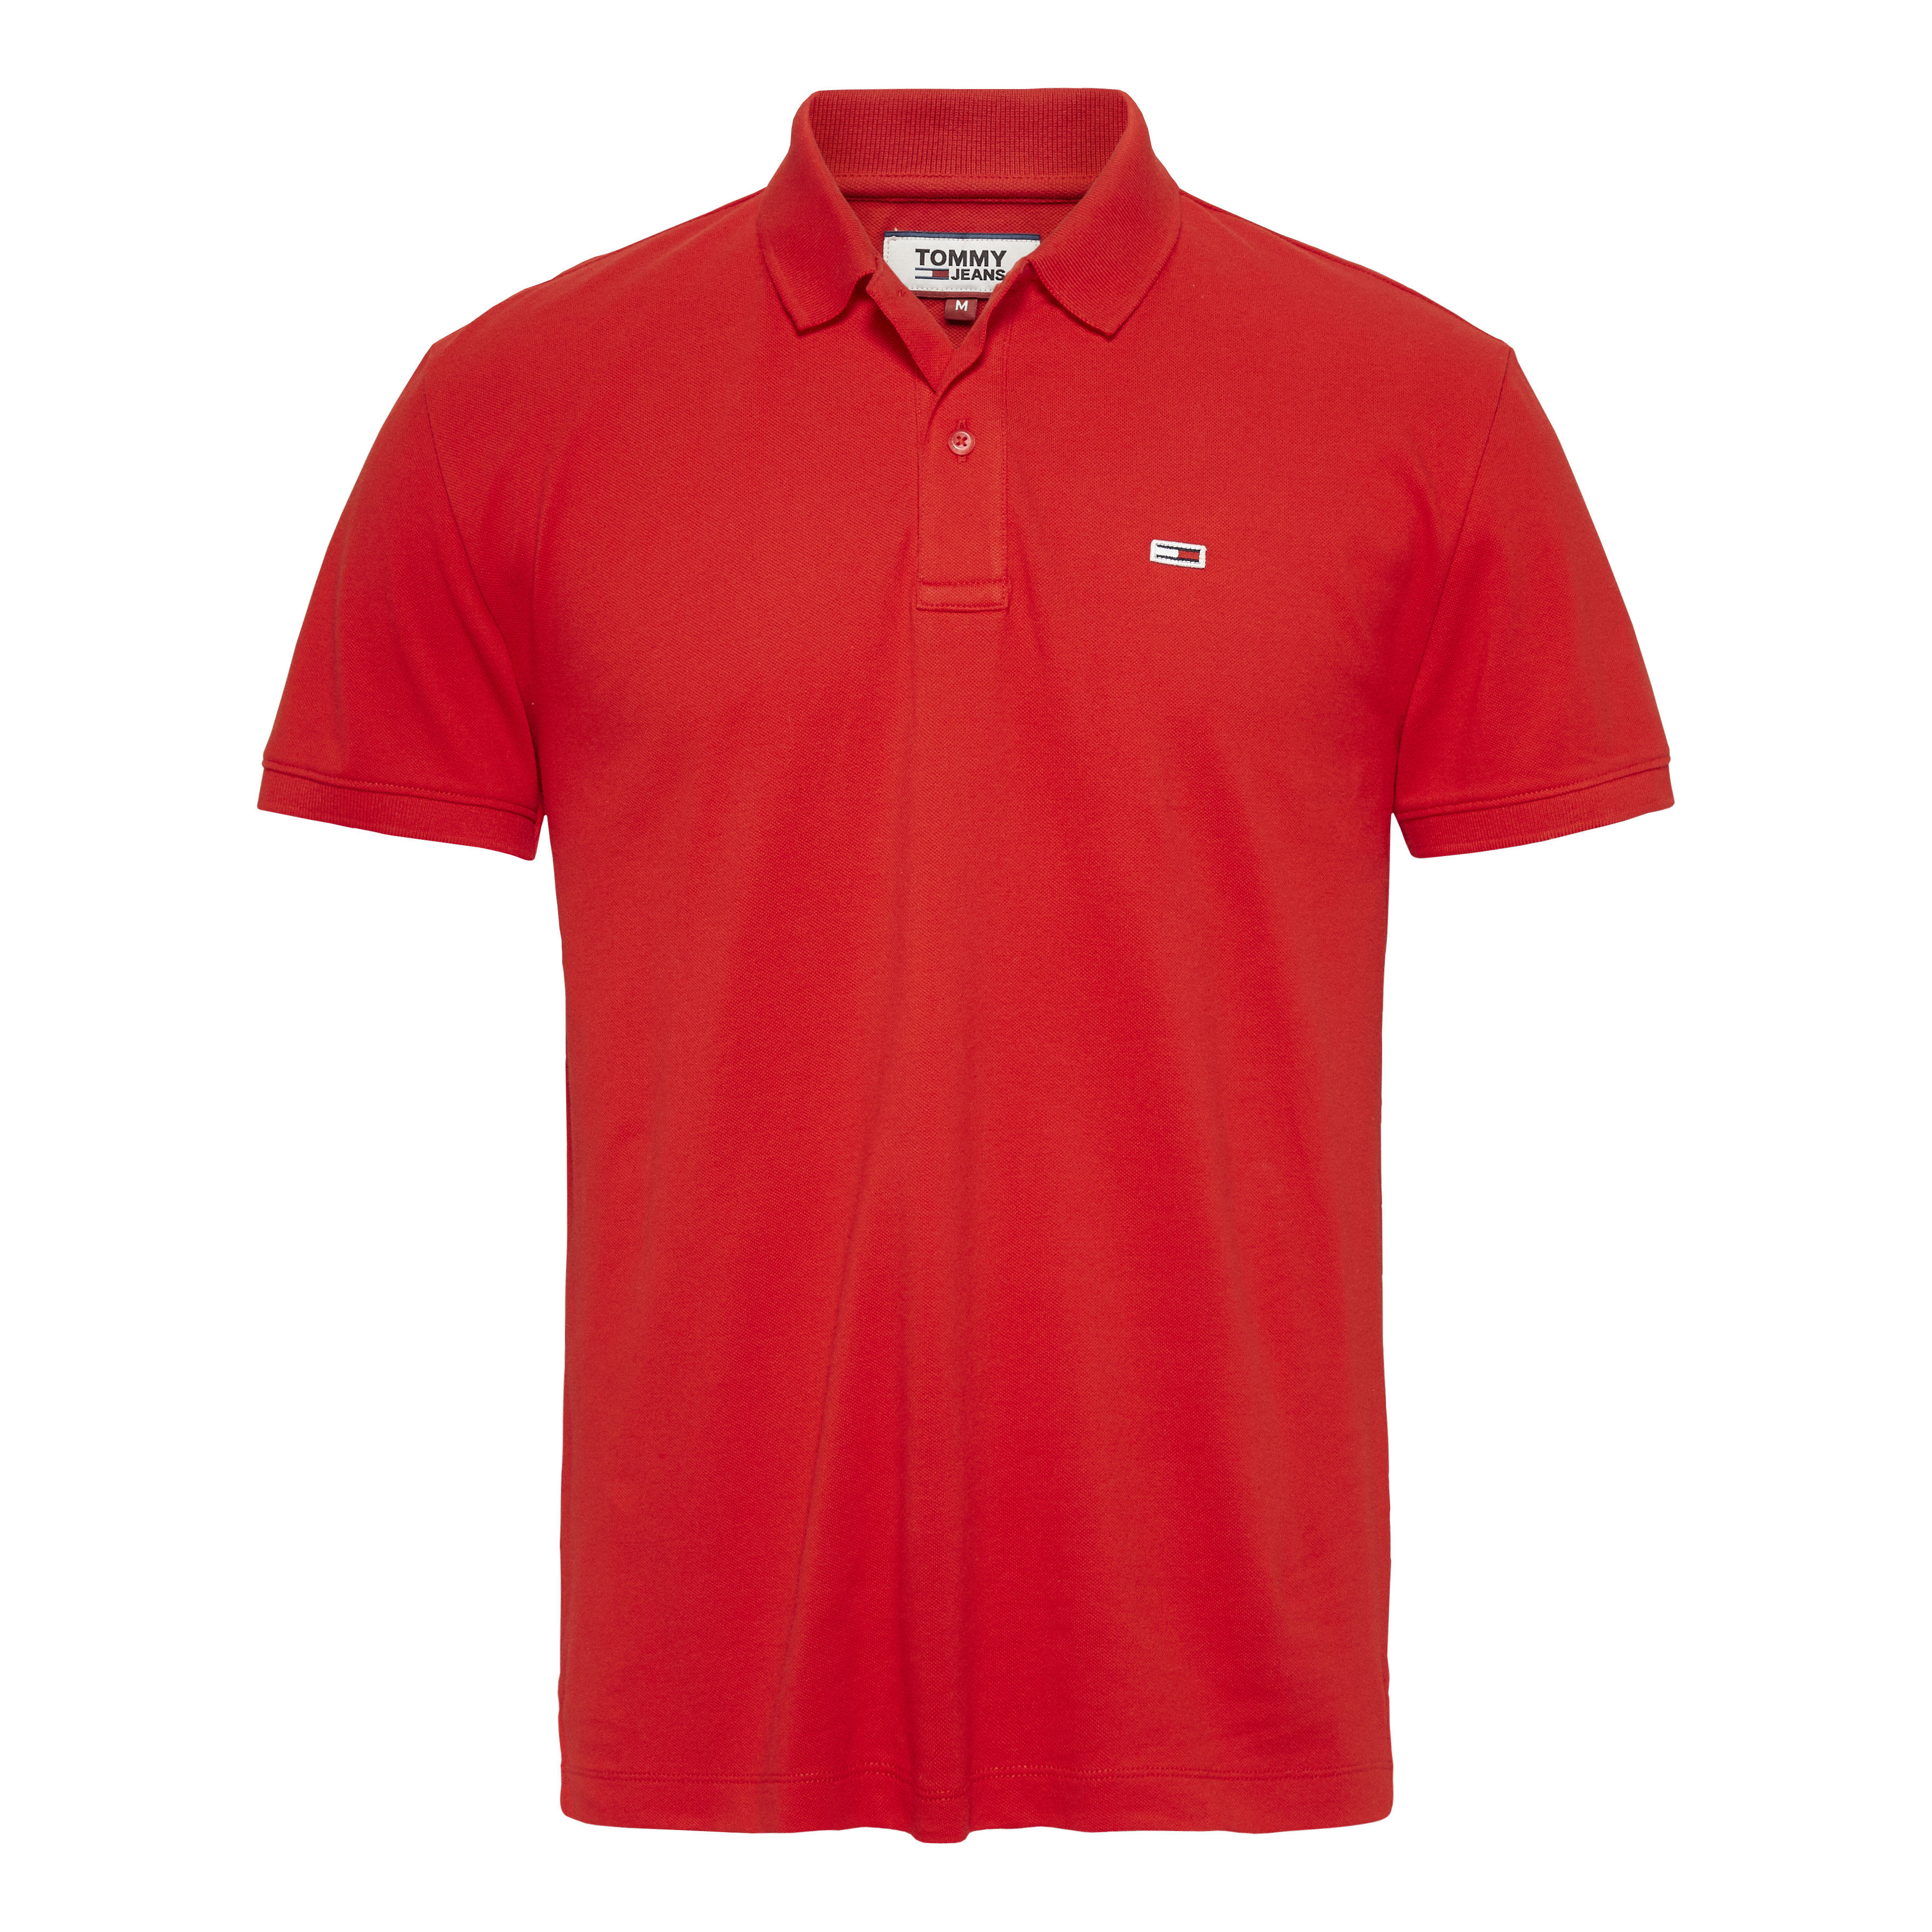 TOMMY JEANS Textil Polo Racing Red DM0DM07196-XA9